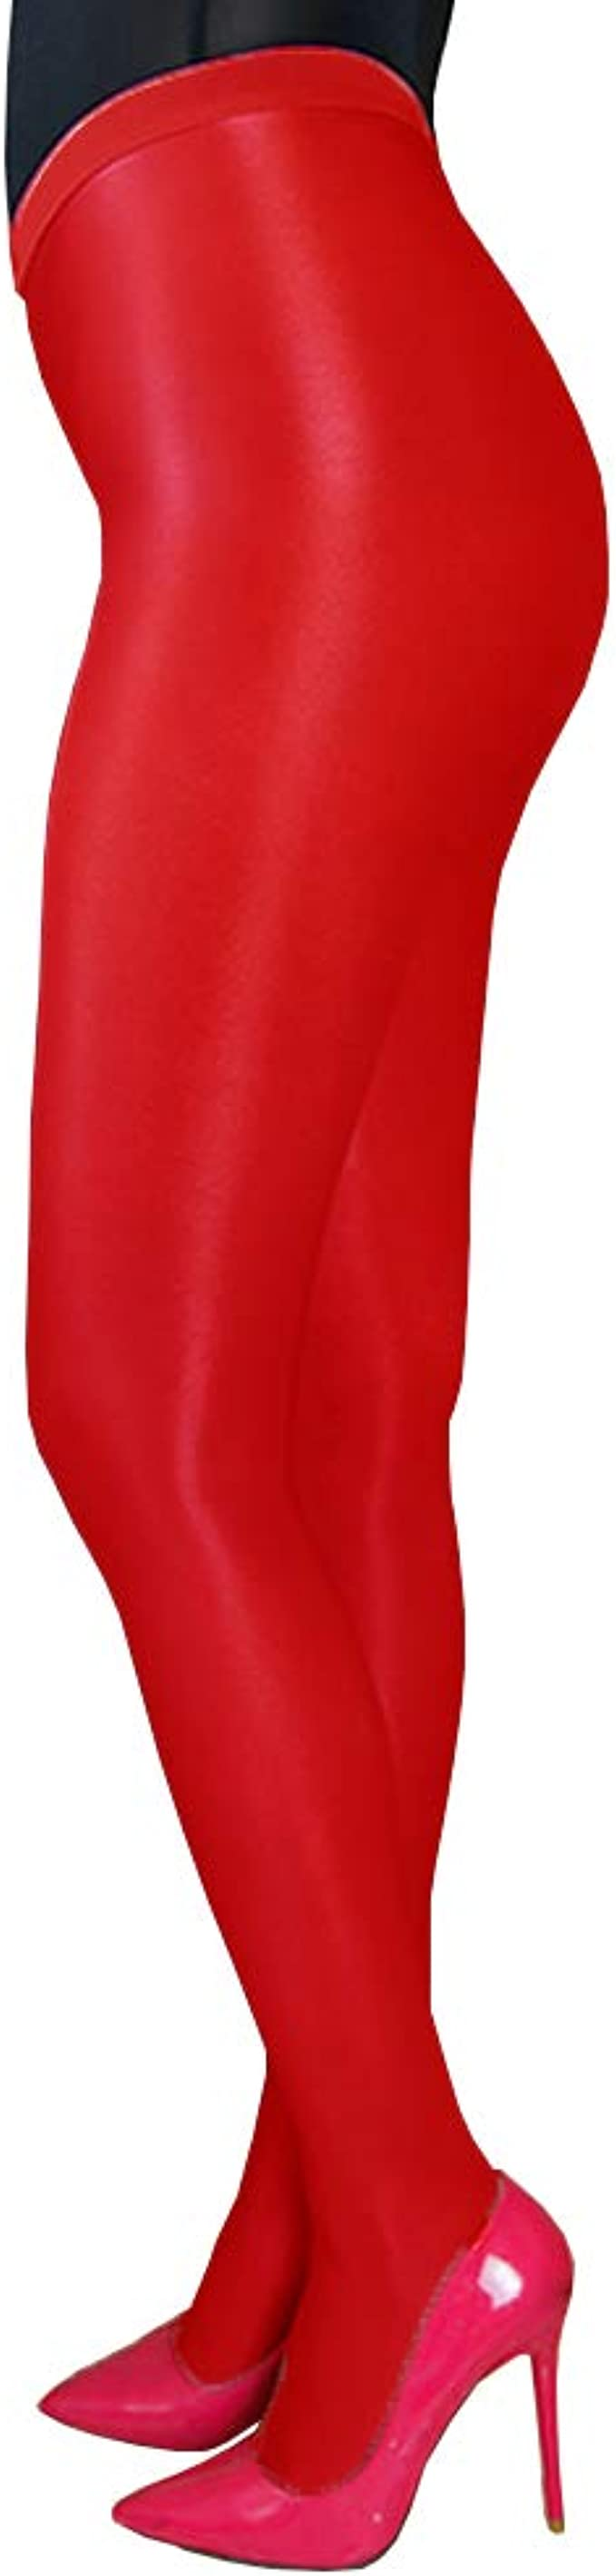 Plus 200lbs 70D Ultra Glossy Shiny Pantyhose Neon effect Dance Ballet Tights